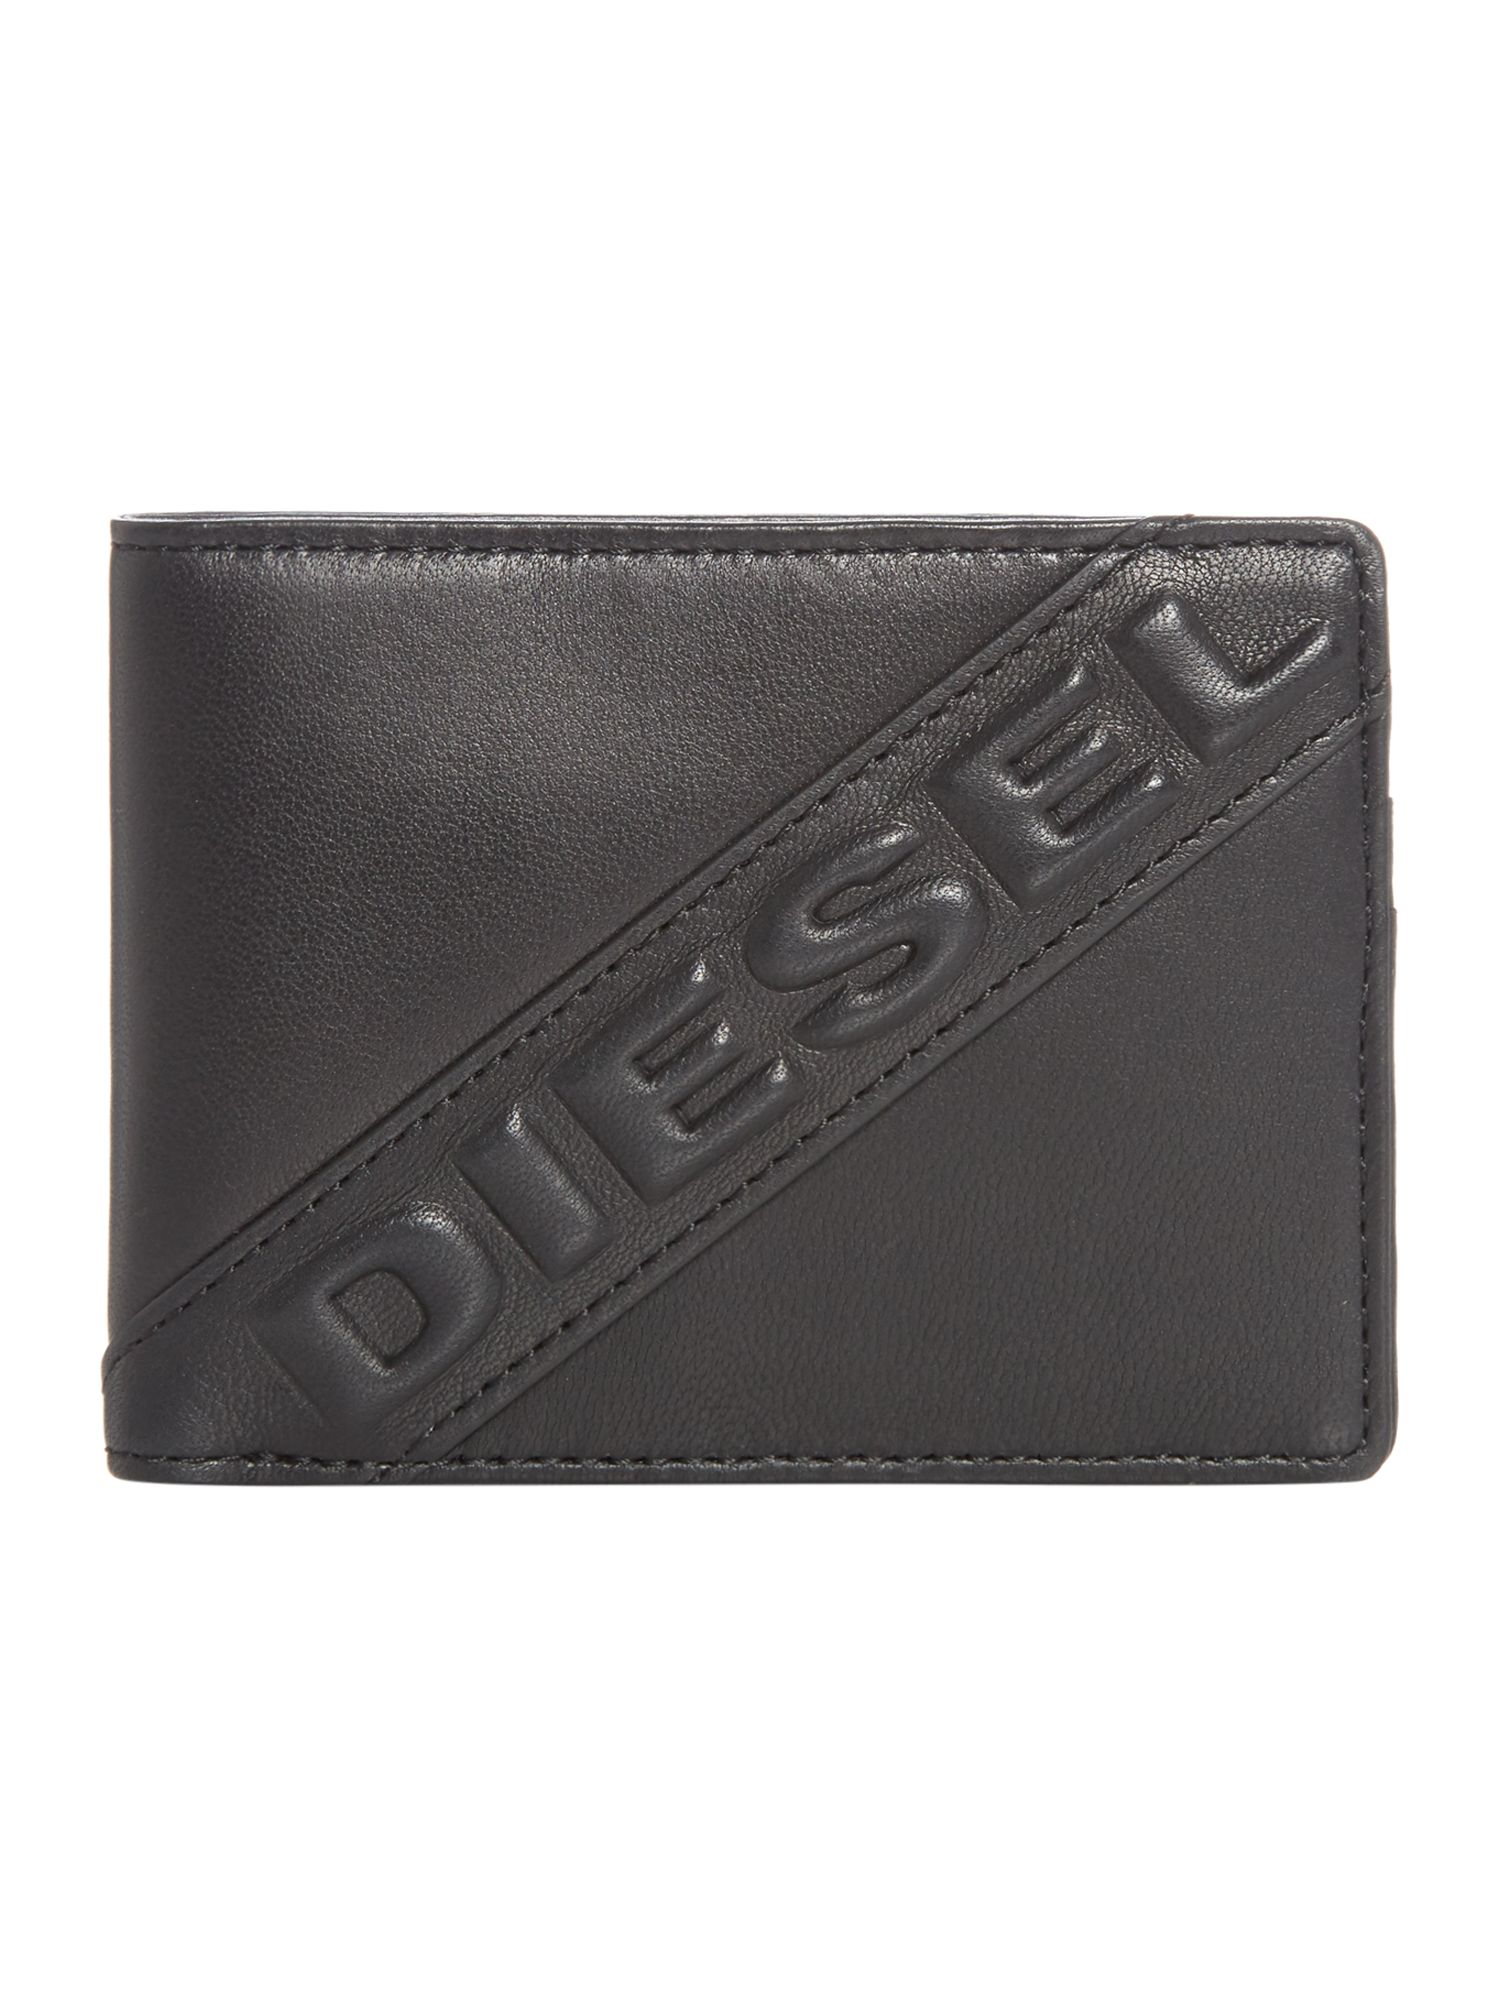 Diesel Embroided Logo Wallet, Black